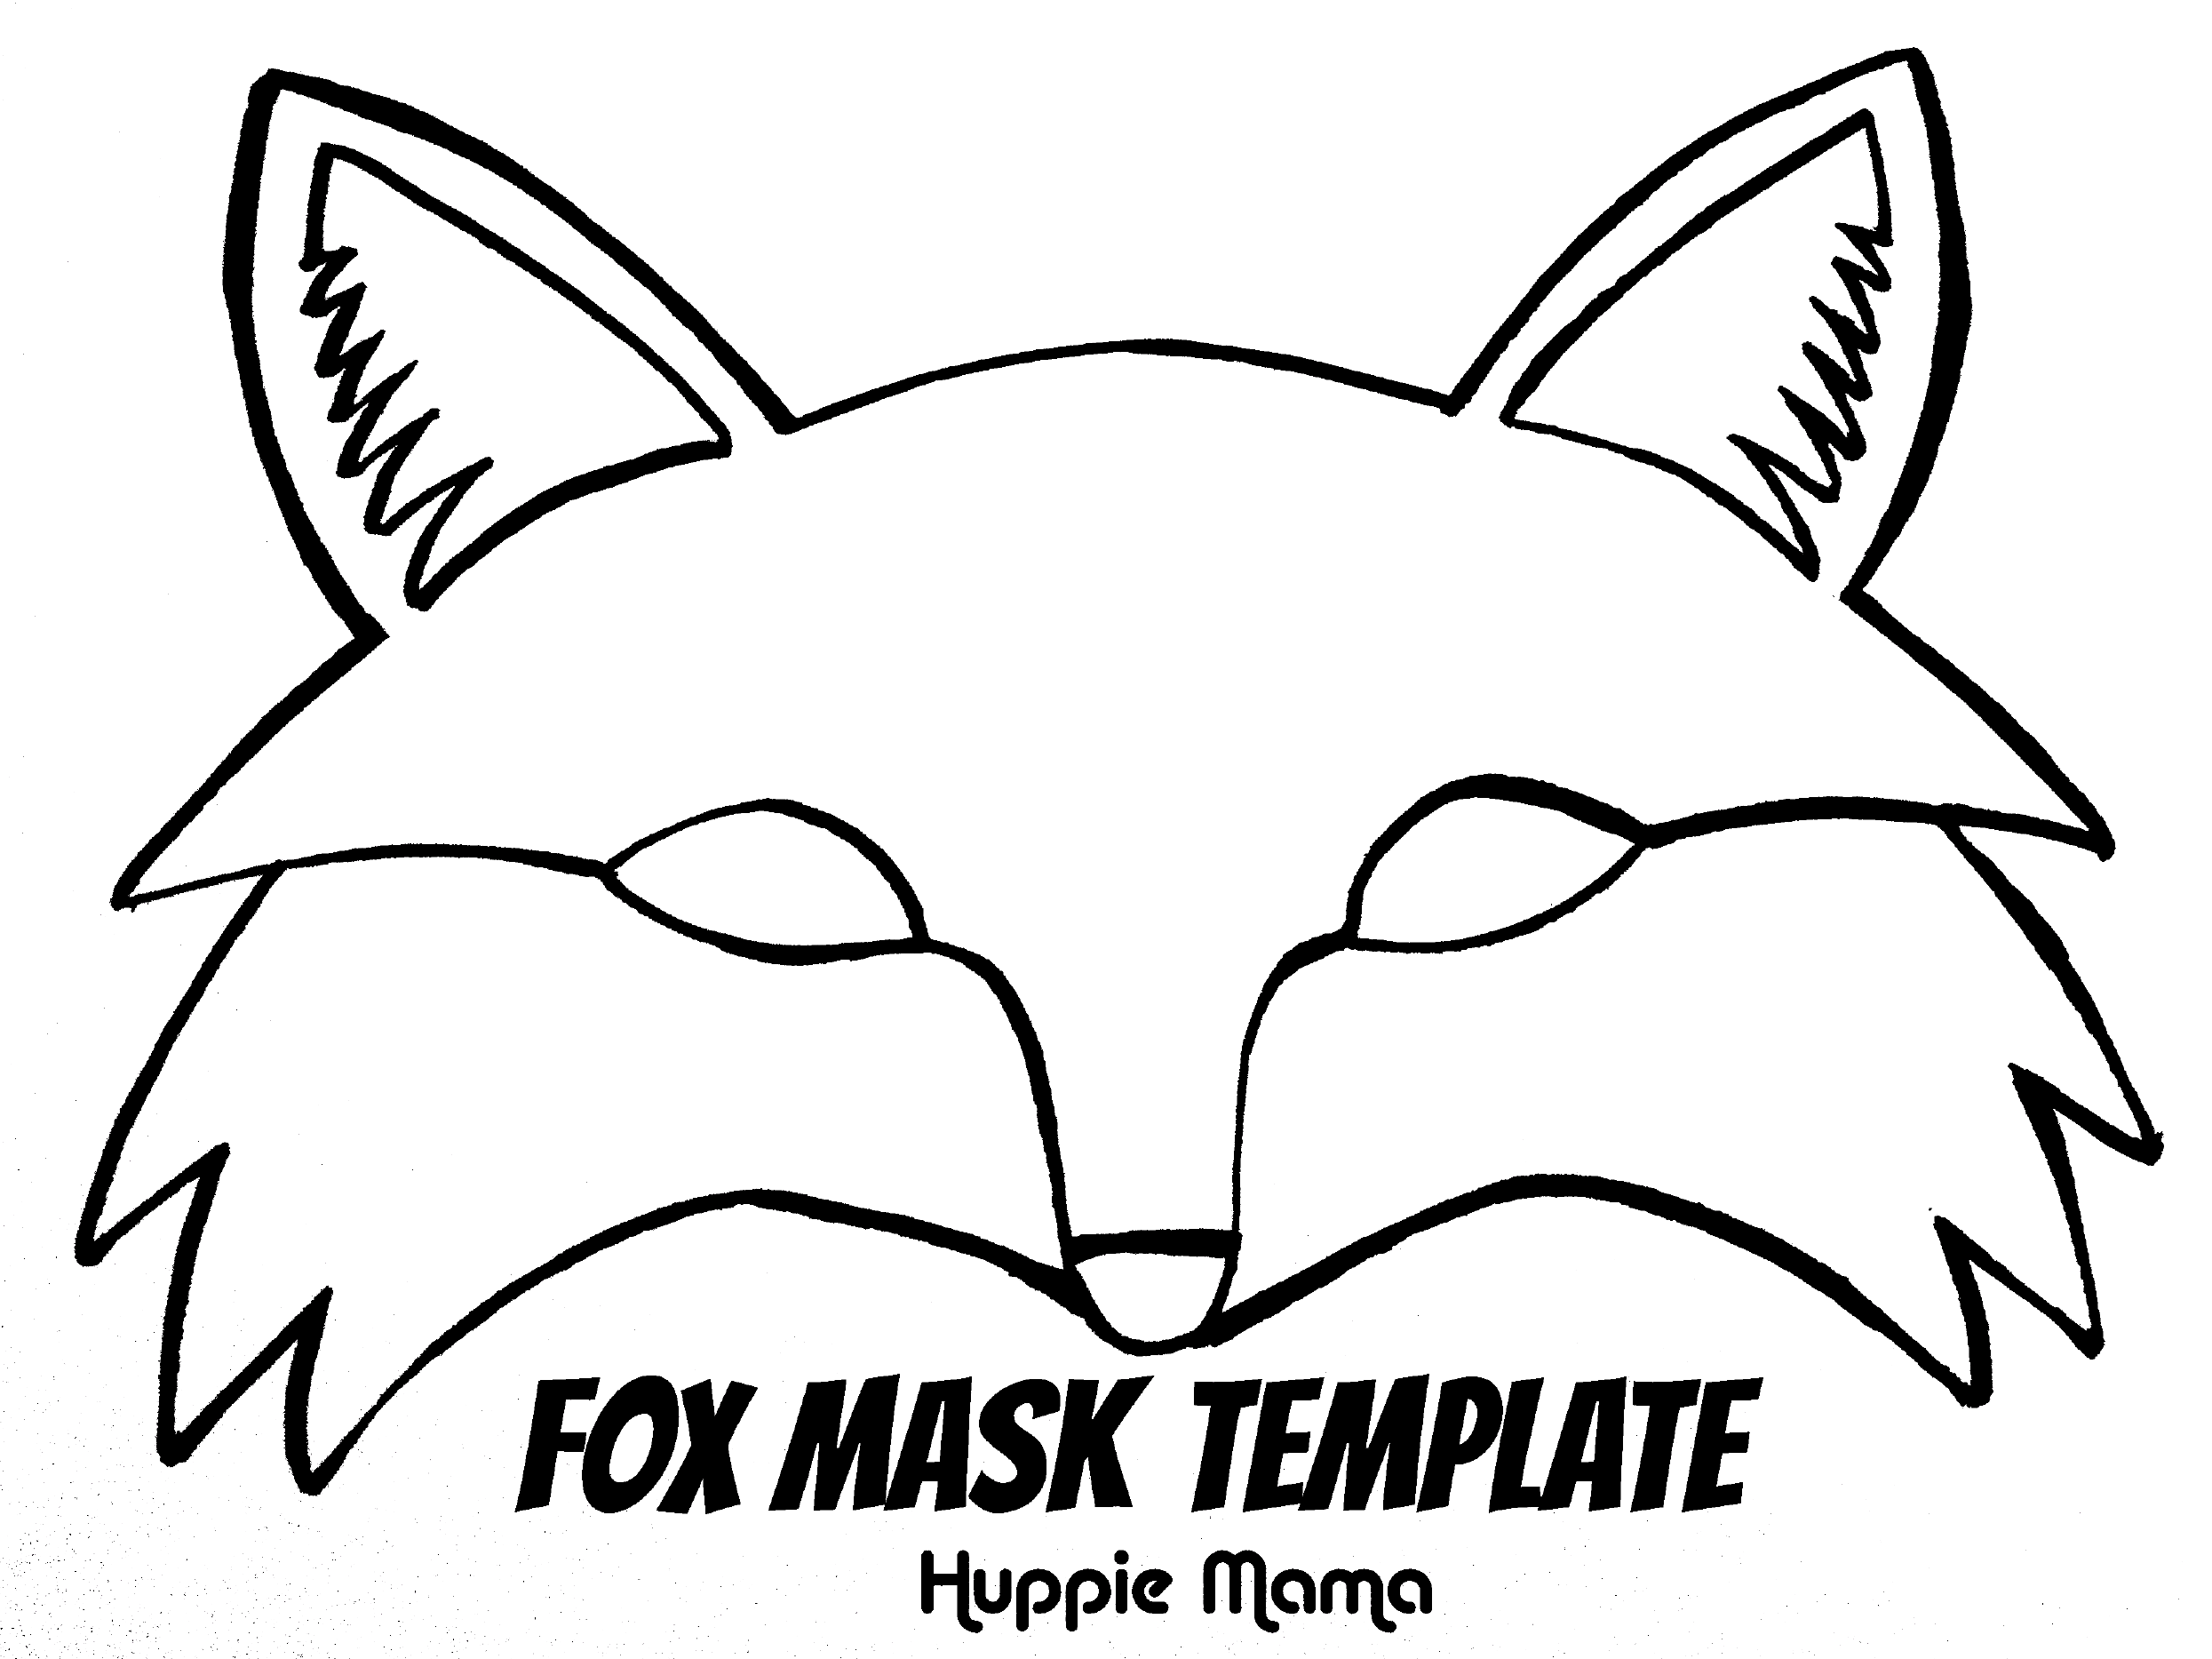 image about Fox Mask Printable titled Fox Mask Template Totally free Obtain